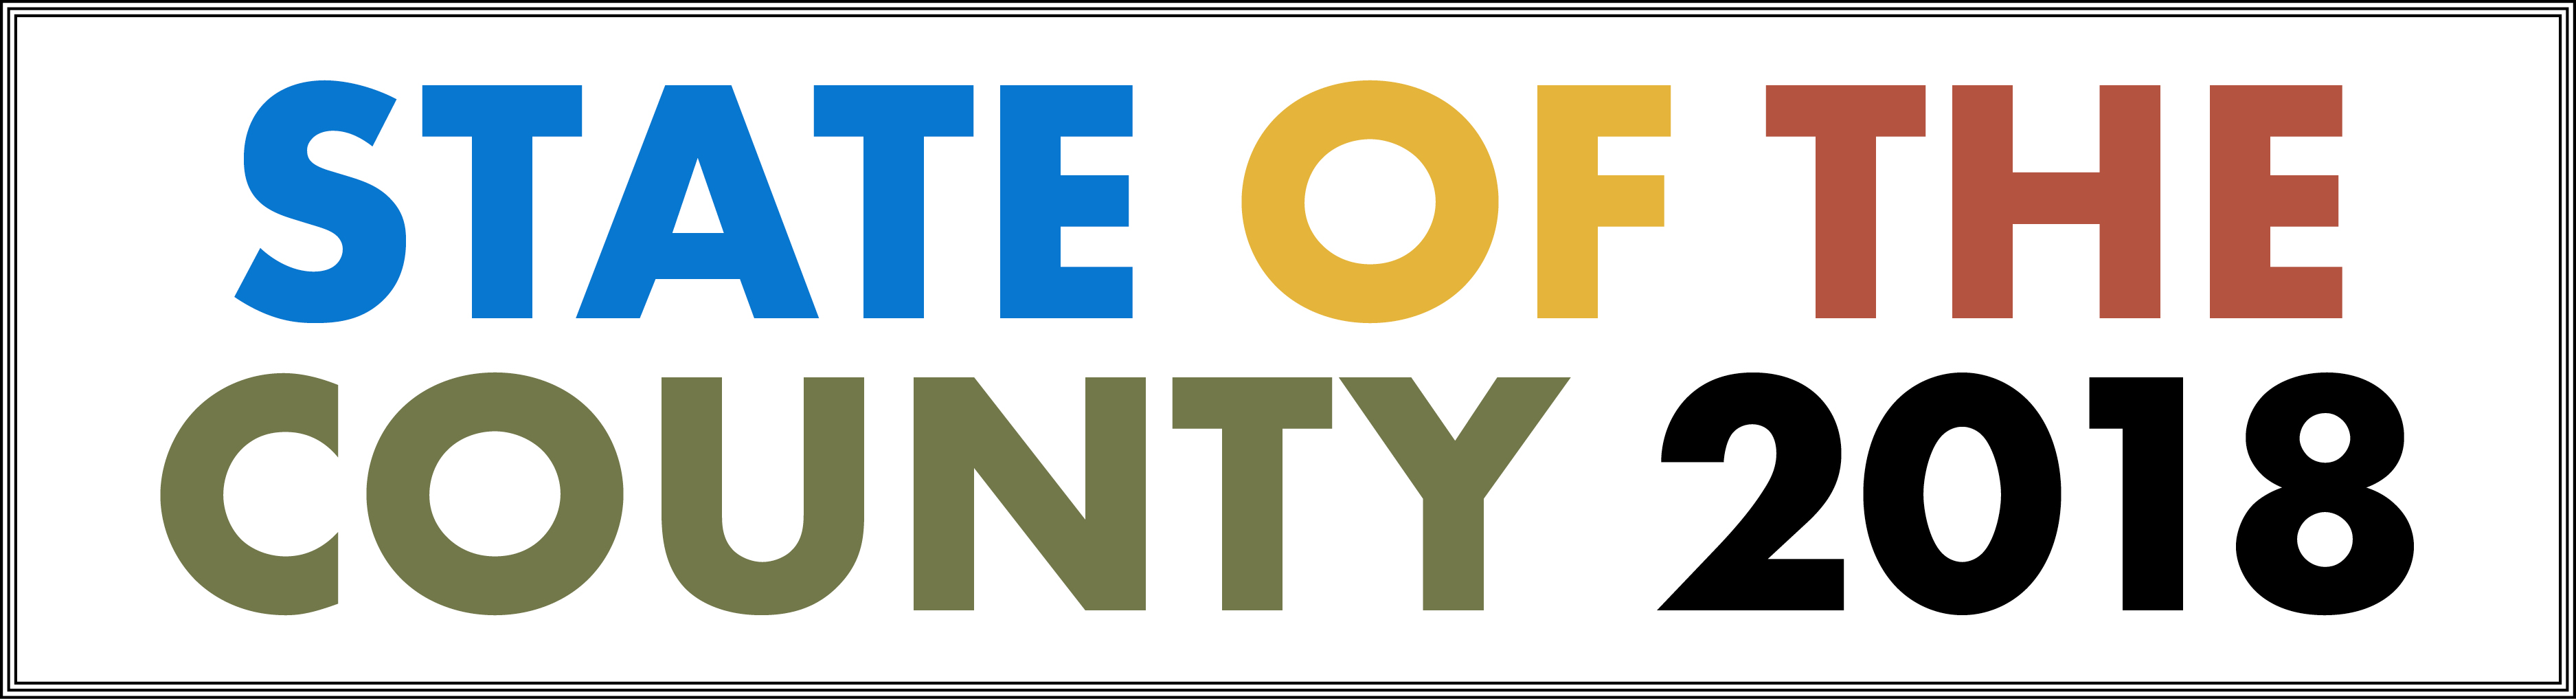 State of the County 2018